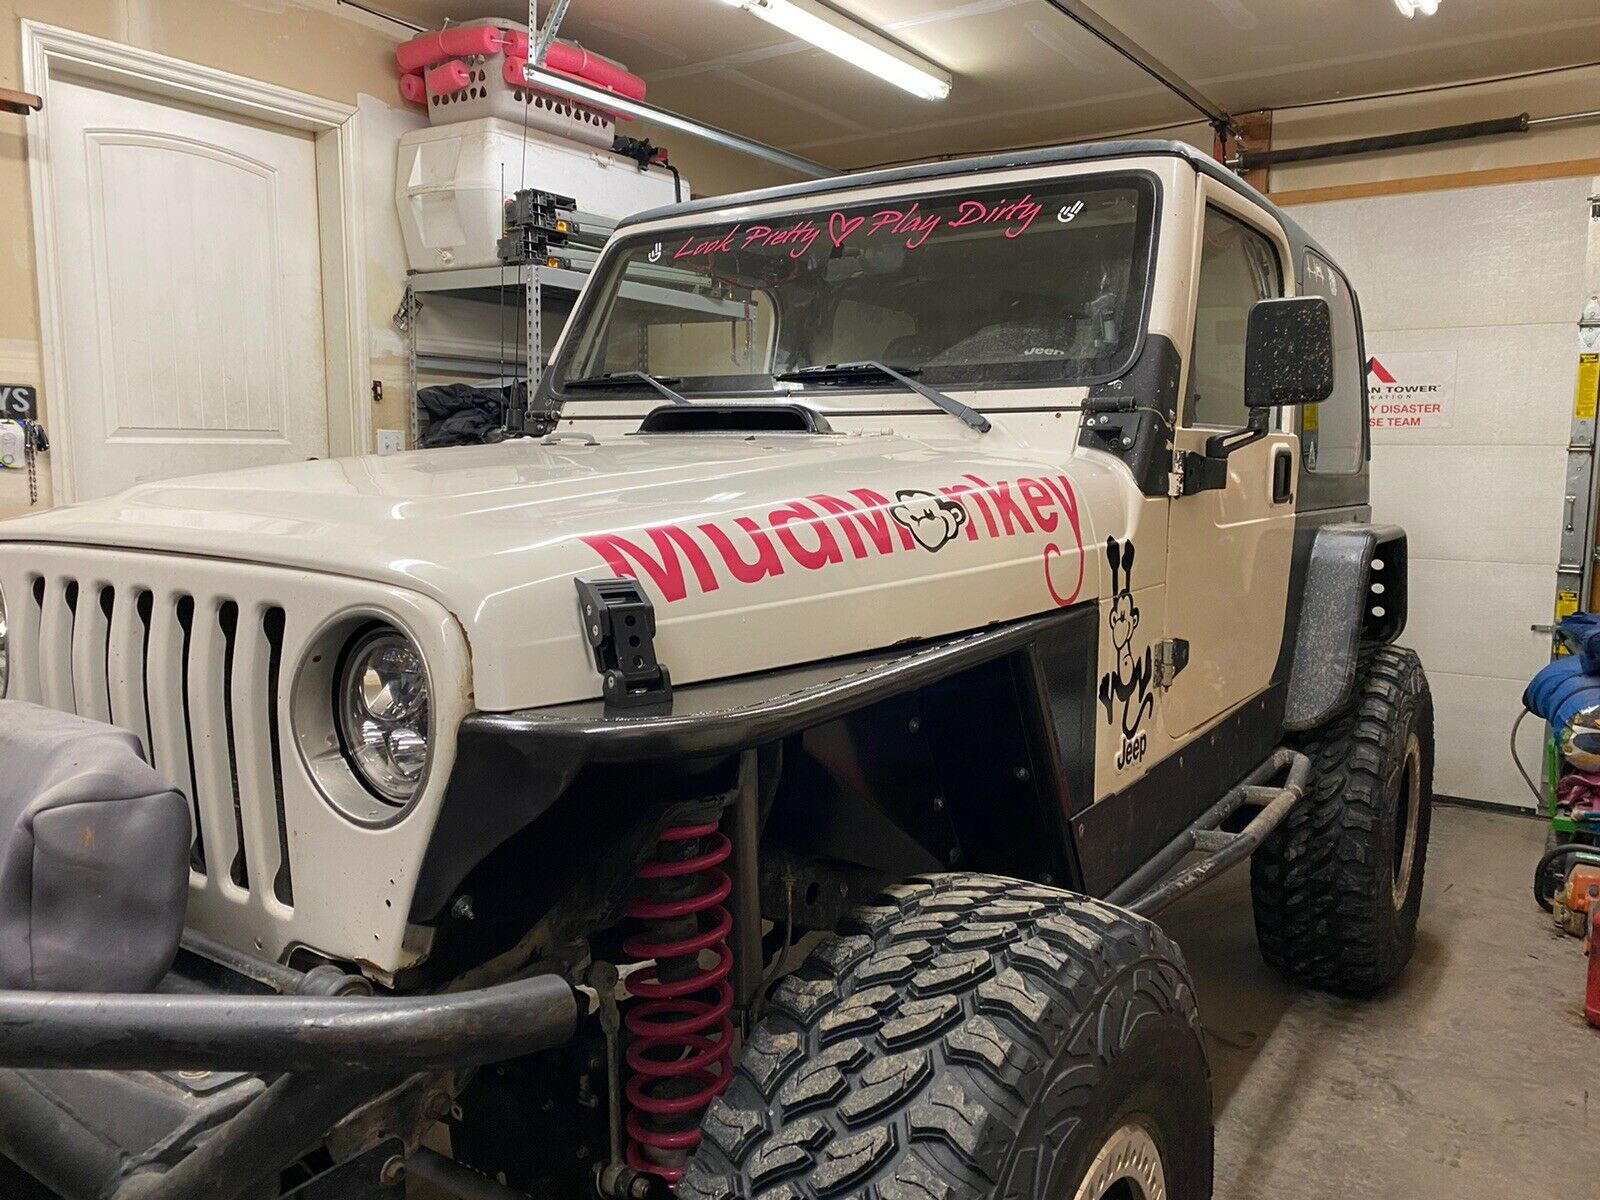 Look Pretty Play Dirty Windshield Decal | Jeep Window Decals